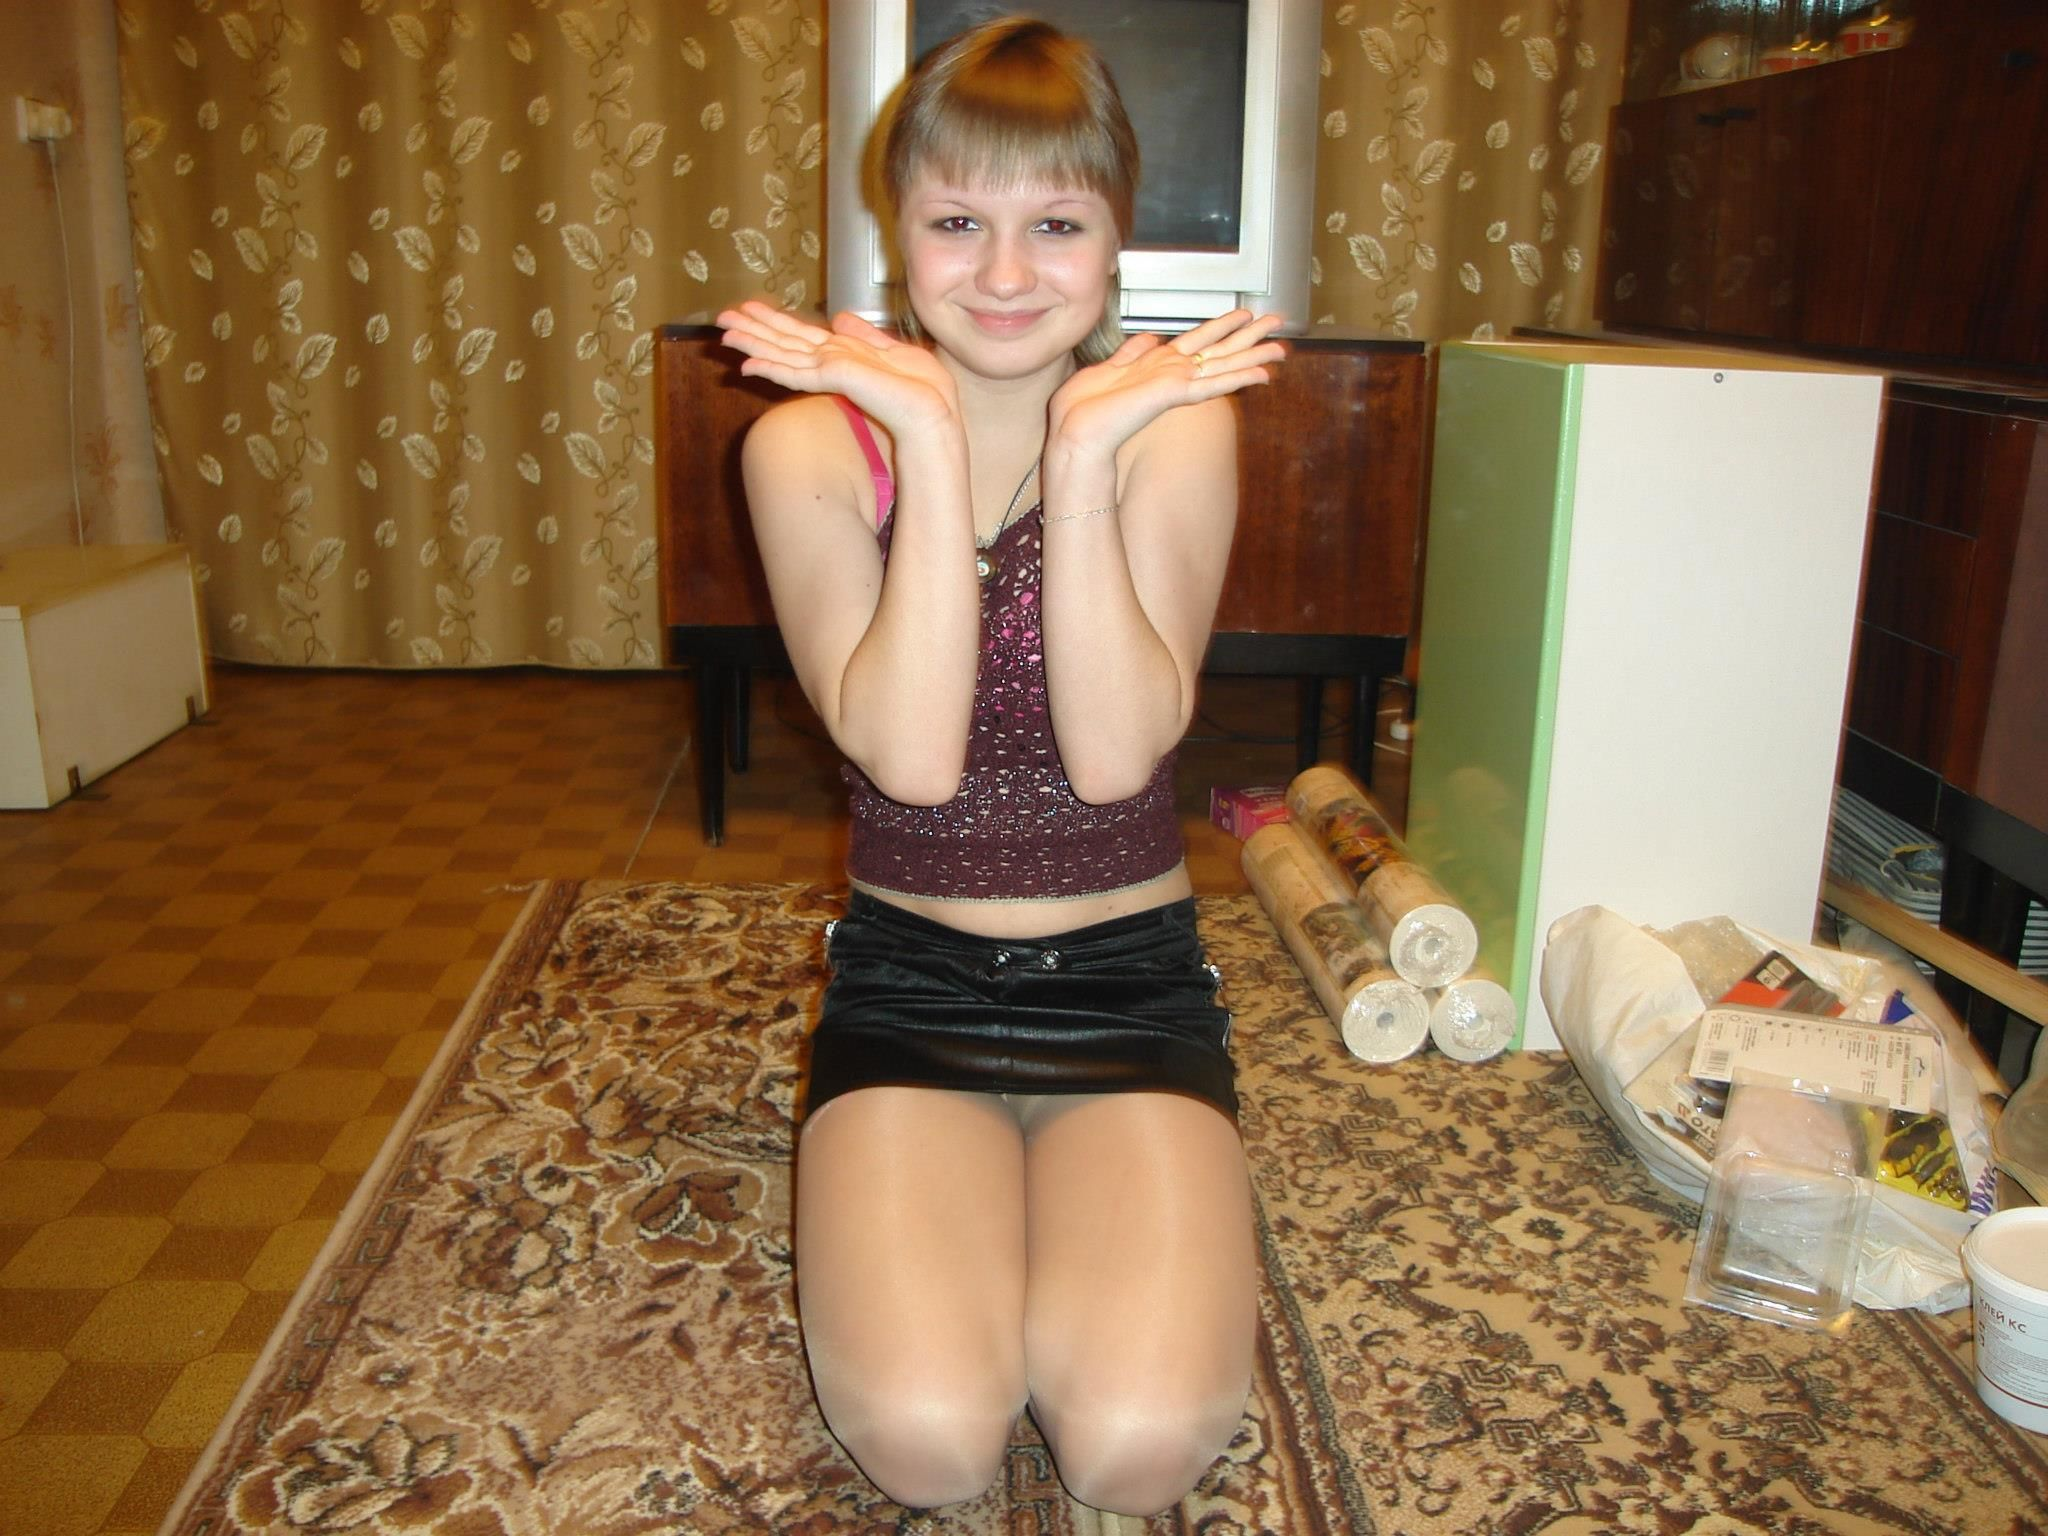 And The Pantyhose Will